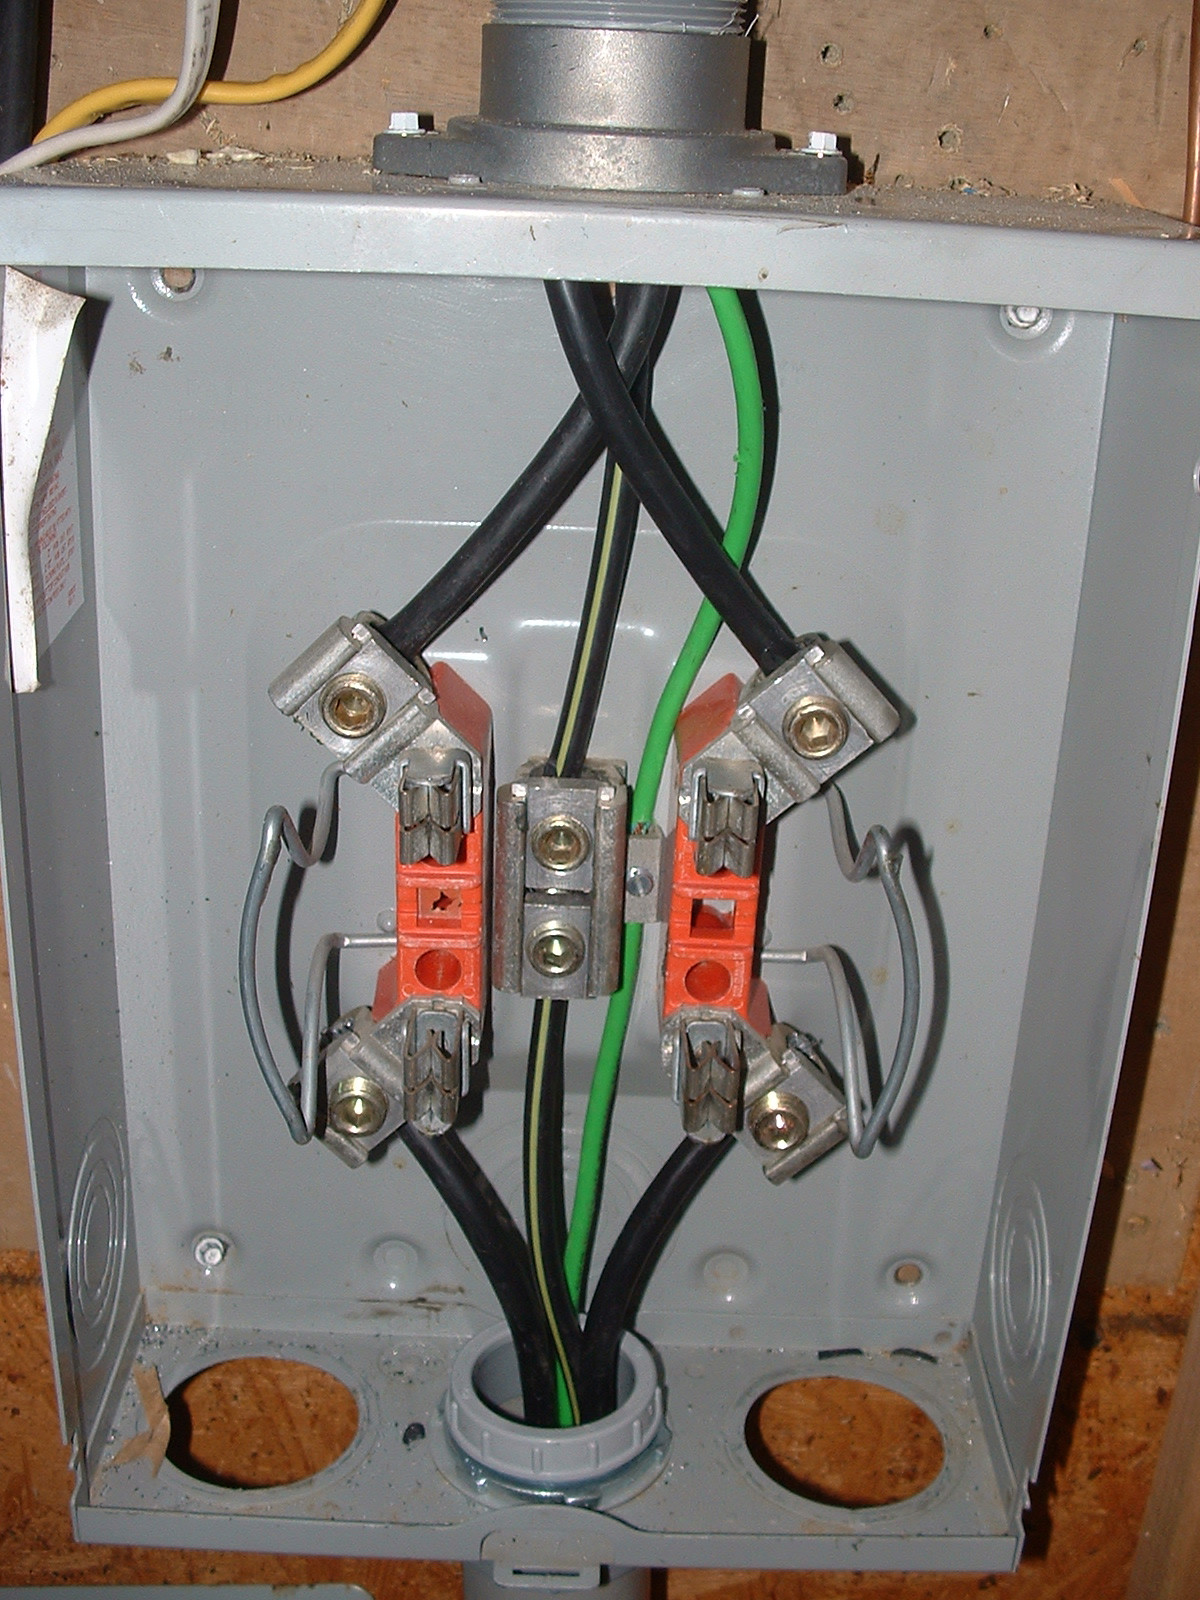 hight resolution of wiring 100 amp meter socket schema diagram database electric meter socket wiring diagram